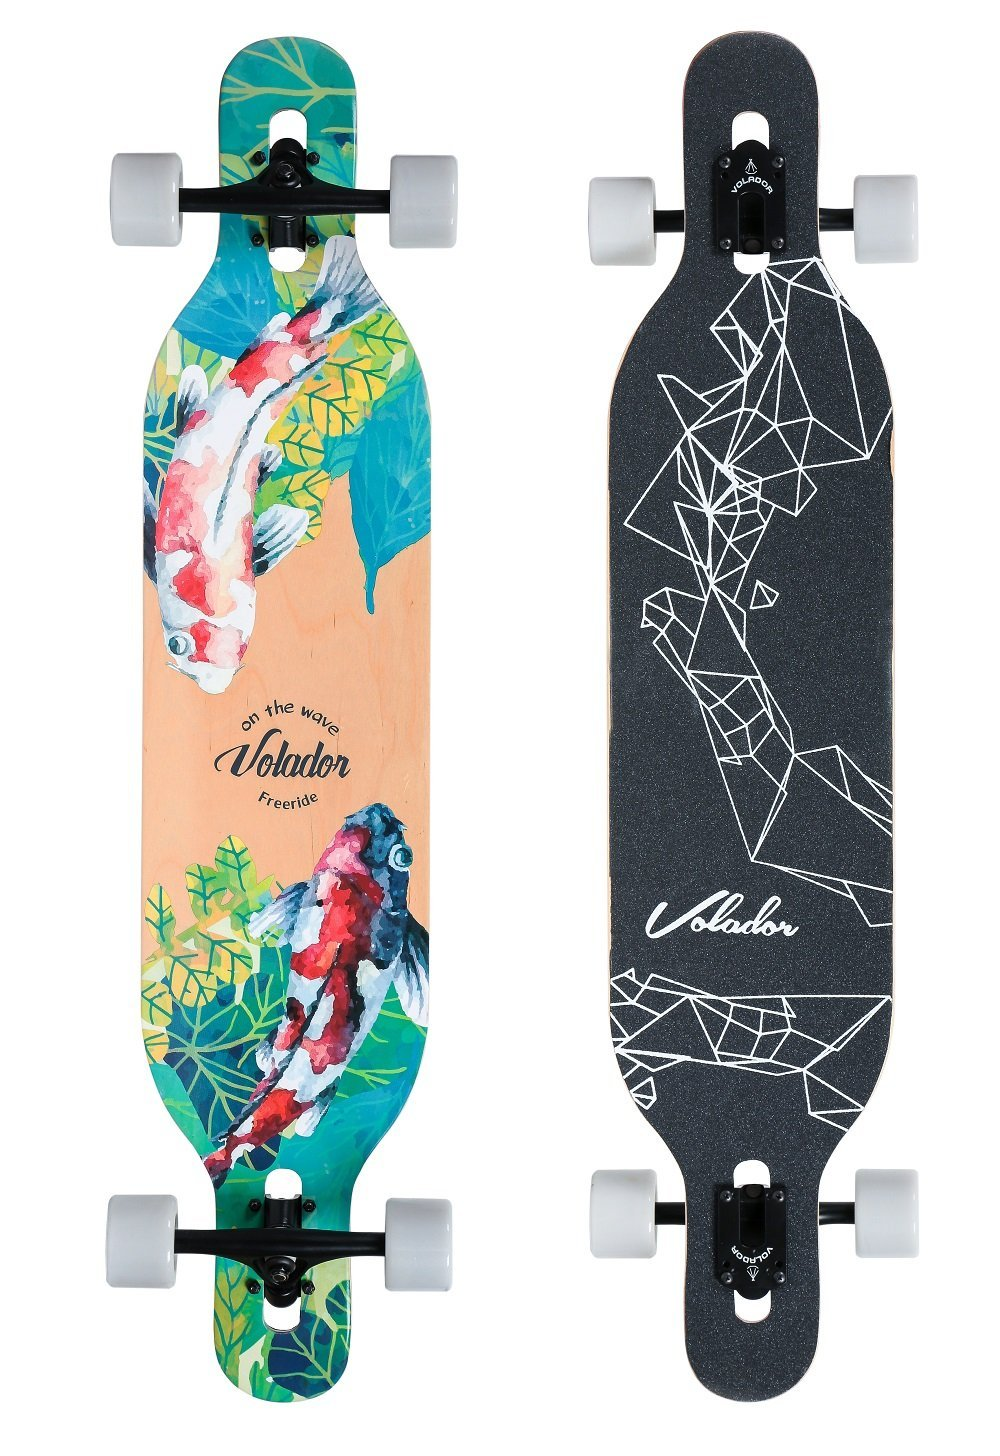 THE 42INCH FREERIDE LONGBOARD BY VOLADOR